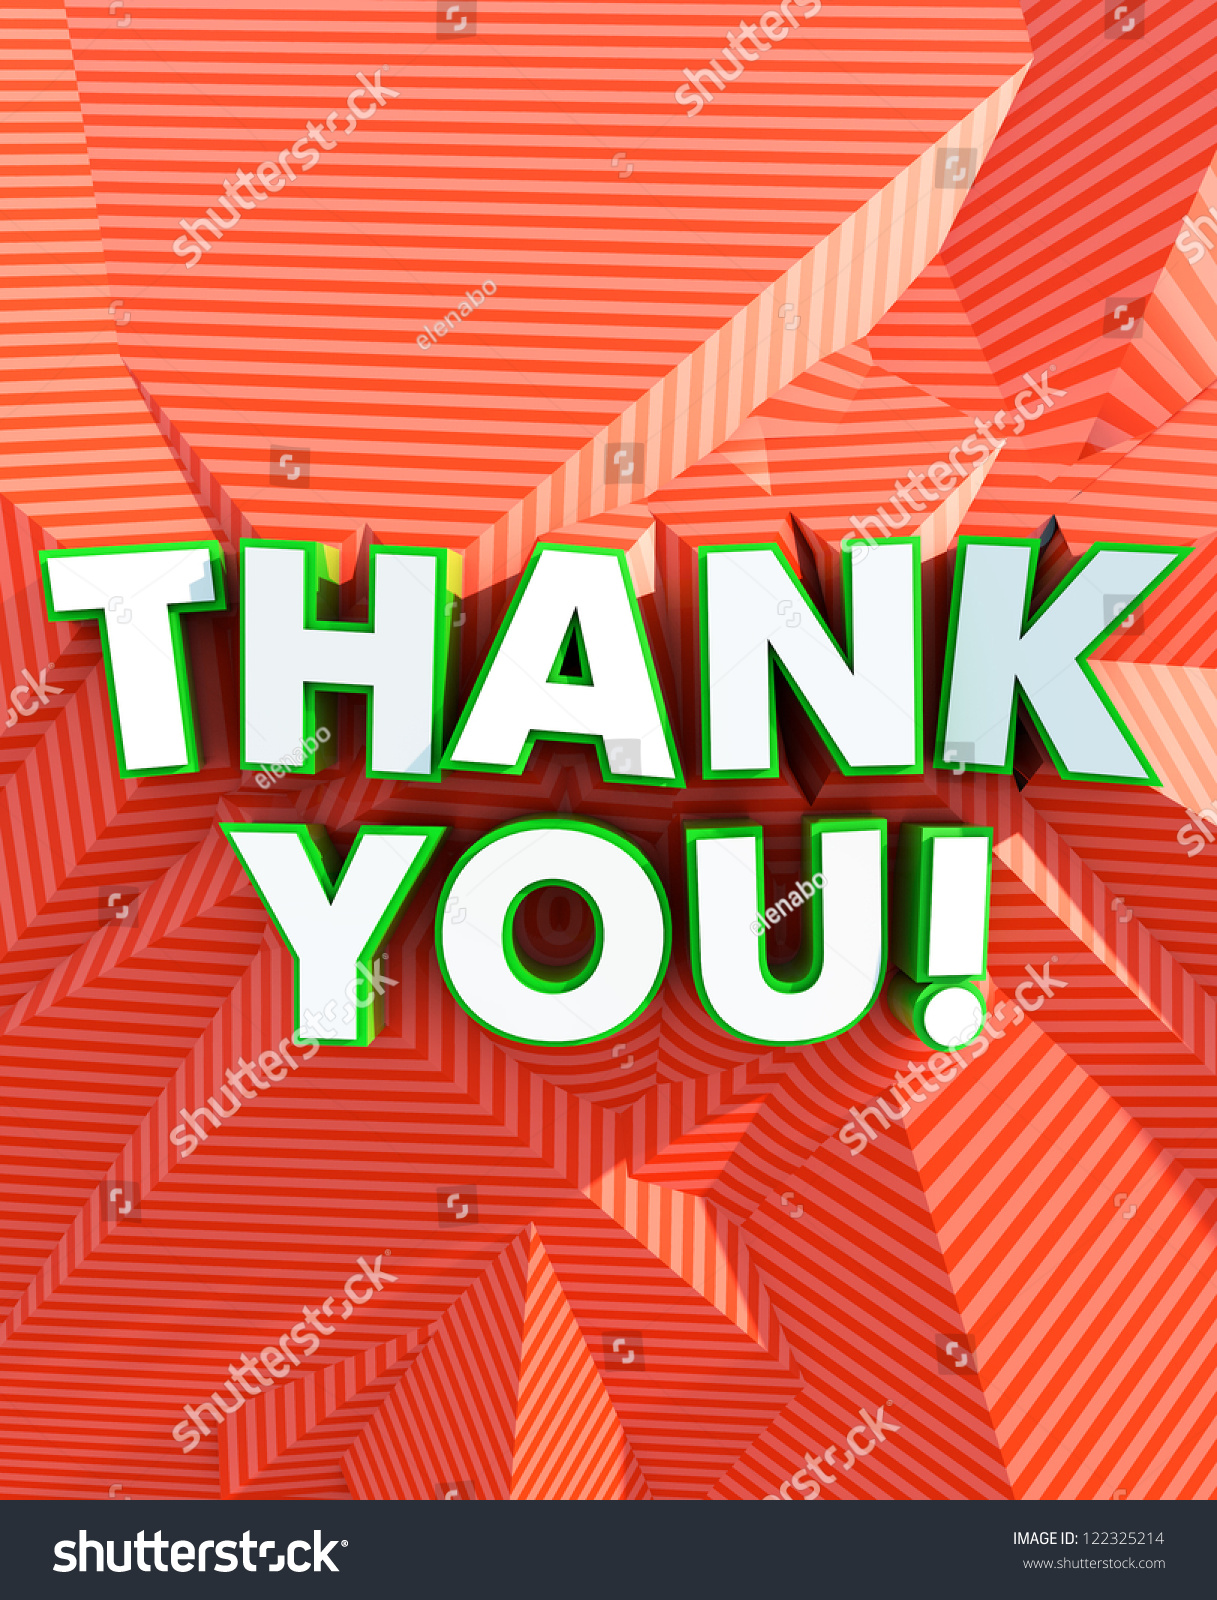 Thank You Poster Stock Photo 122325214 Shutterstock